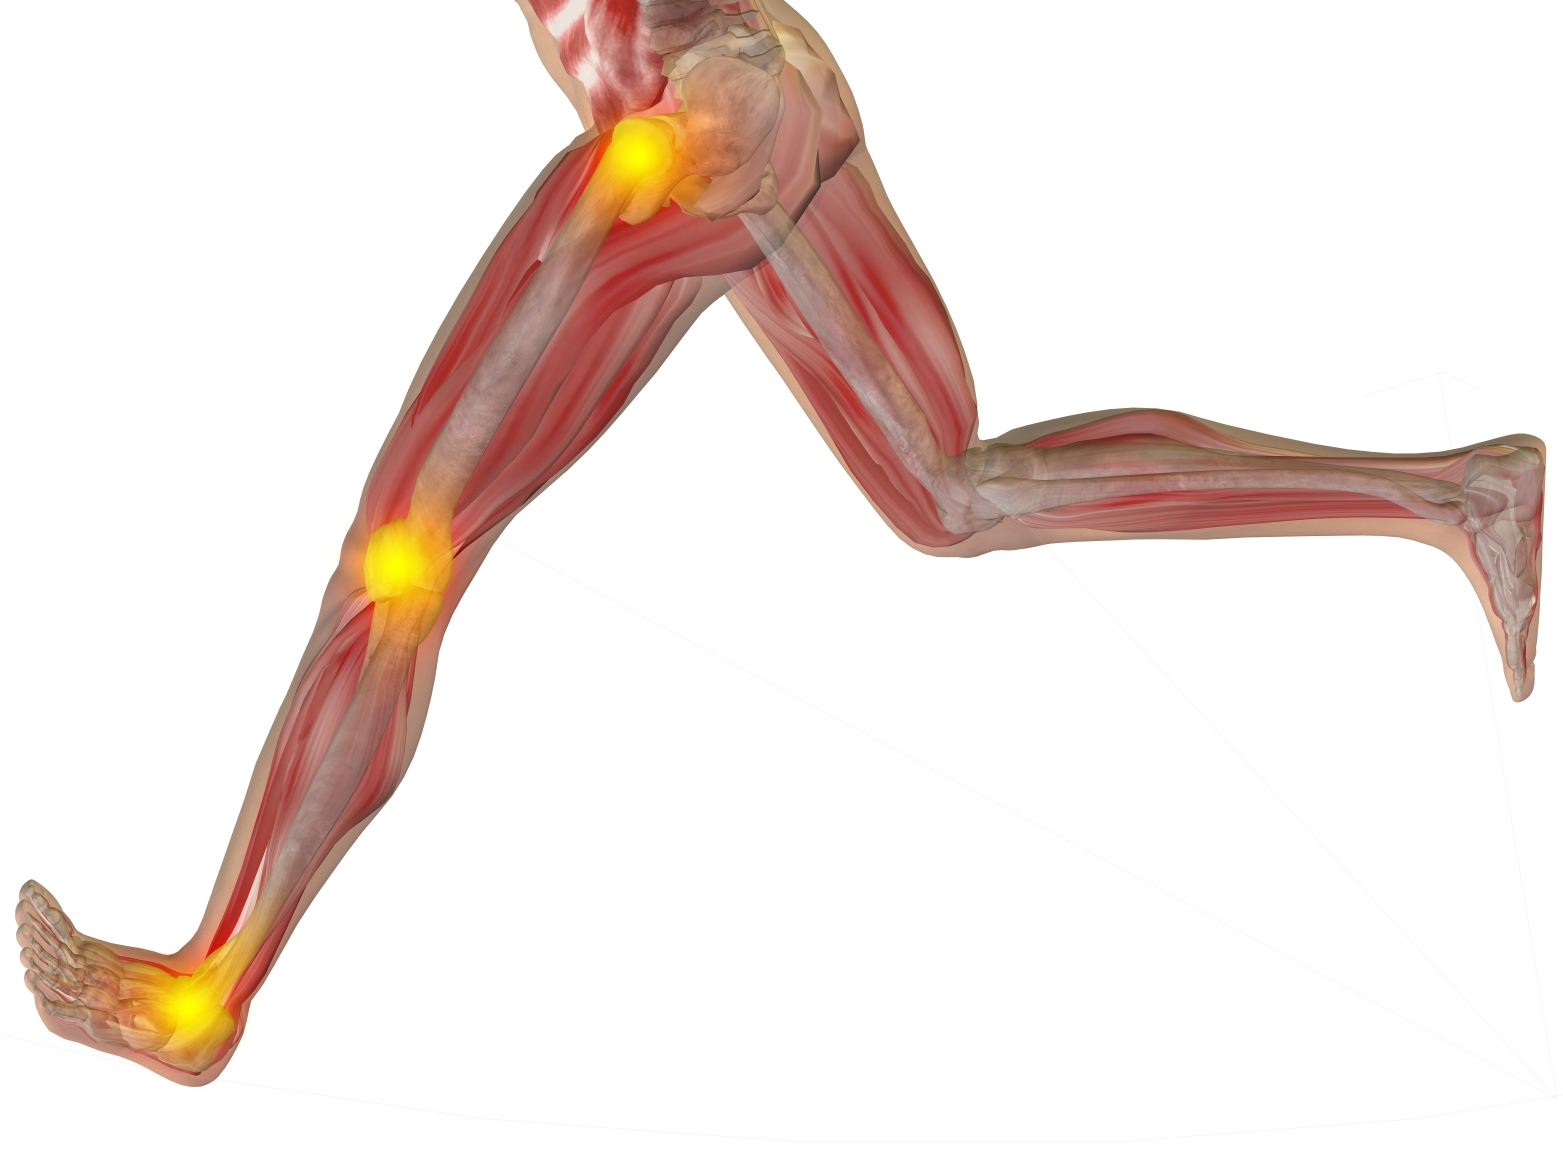 Runner\'s Knee: What Is It And Why Does It Hurt?